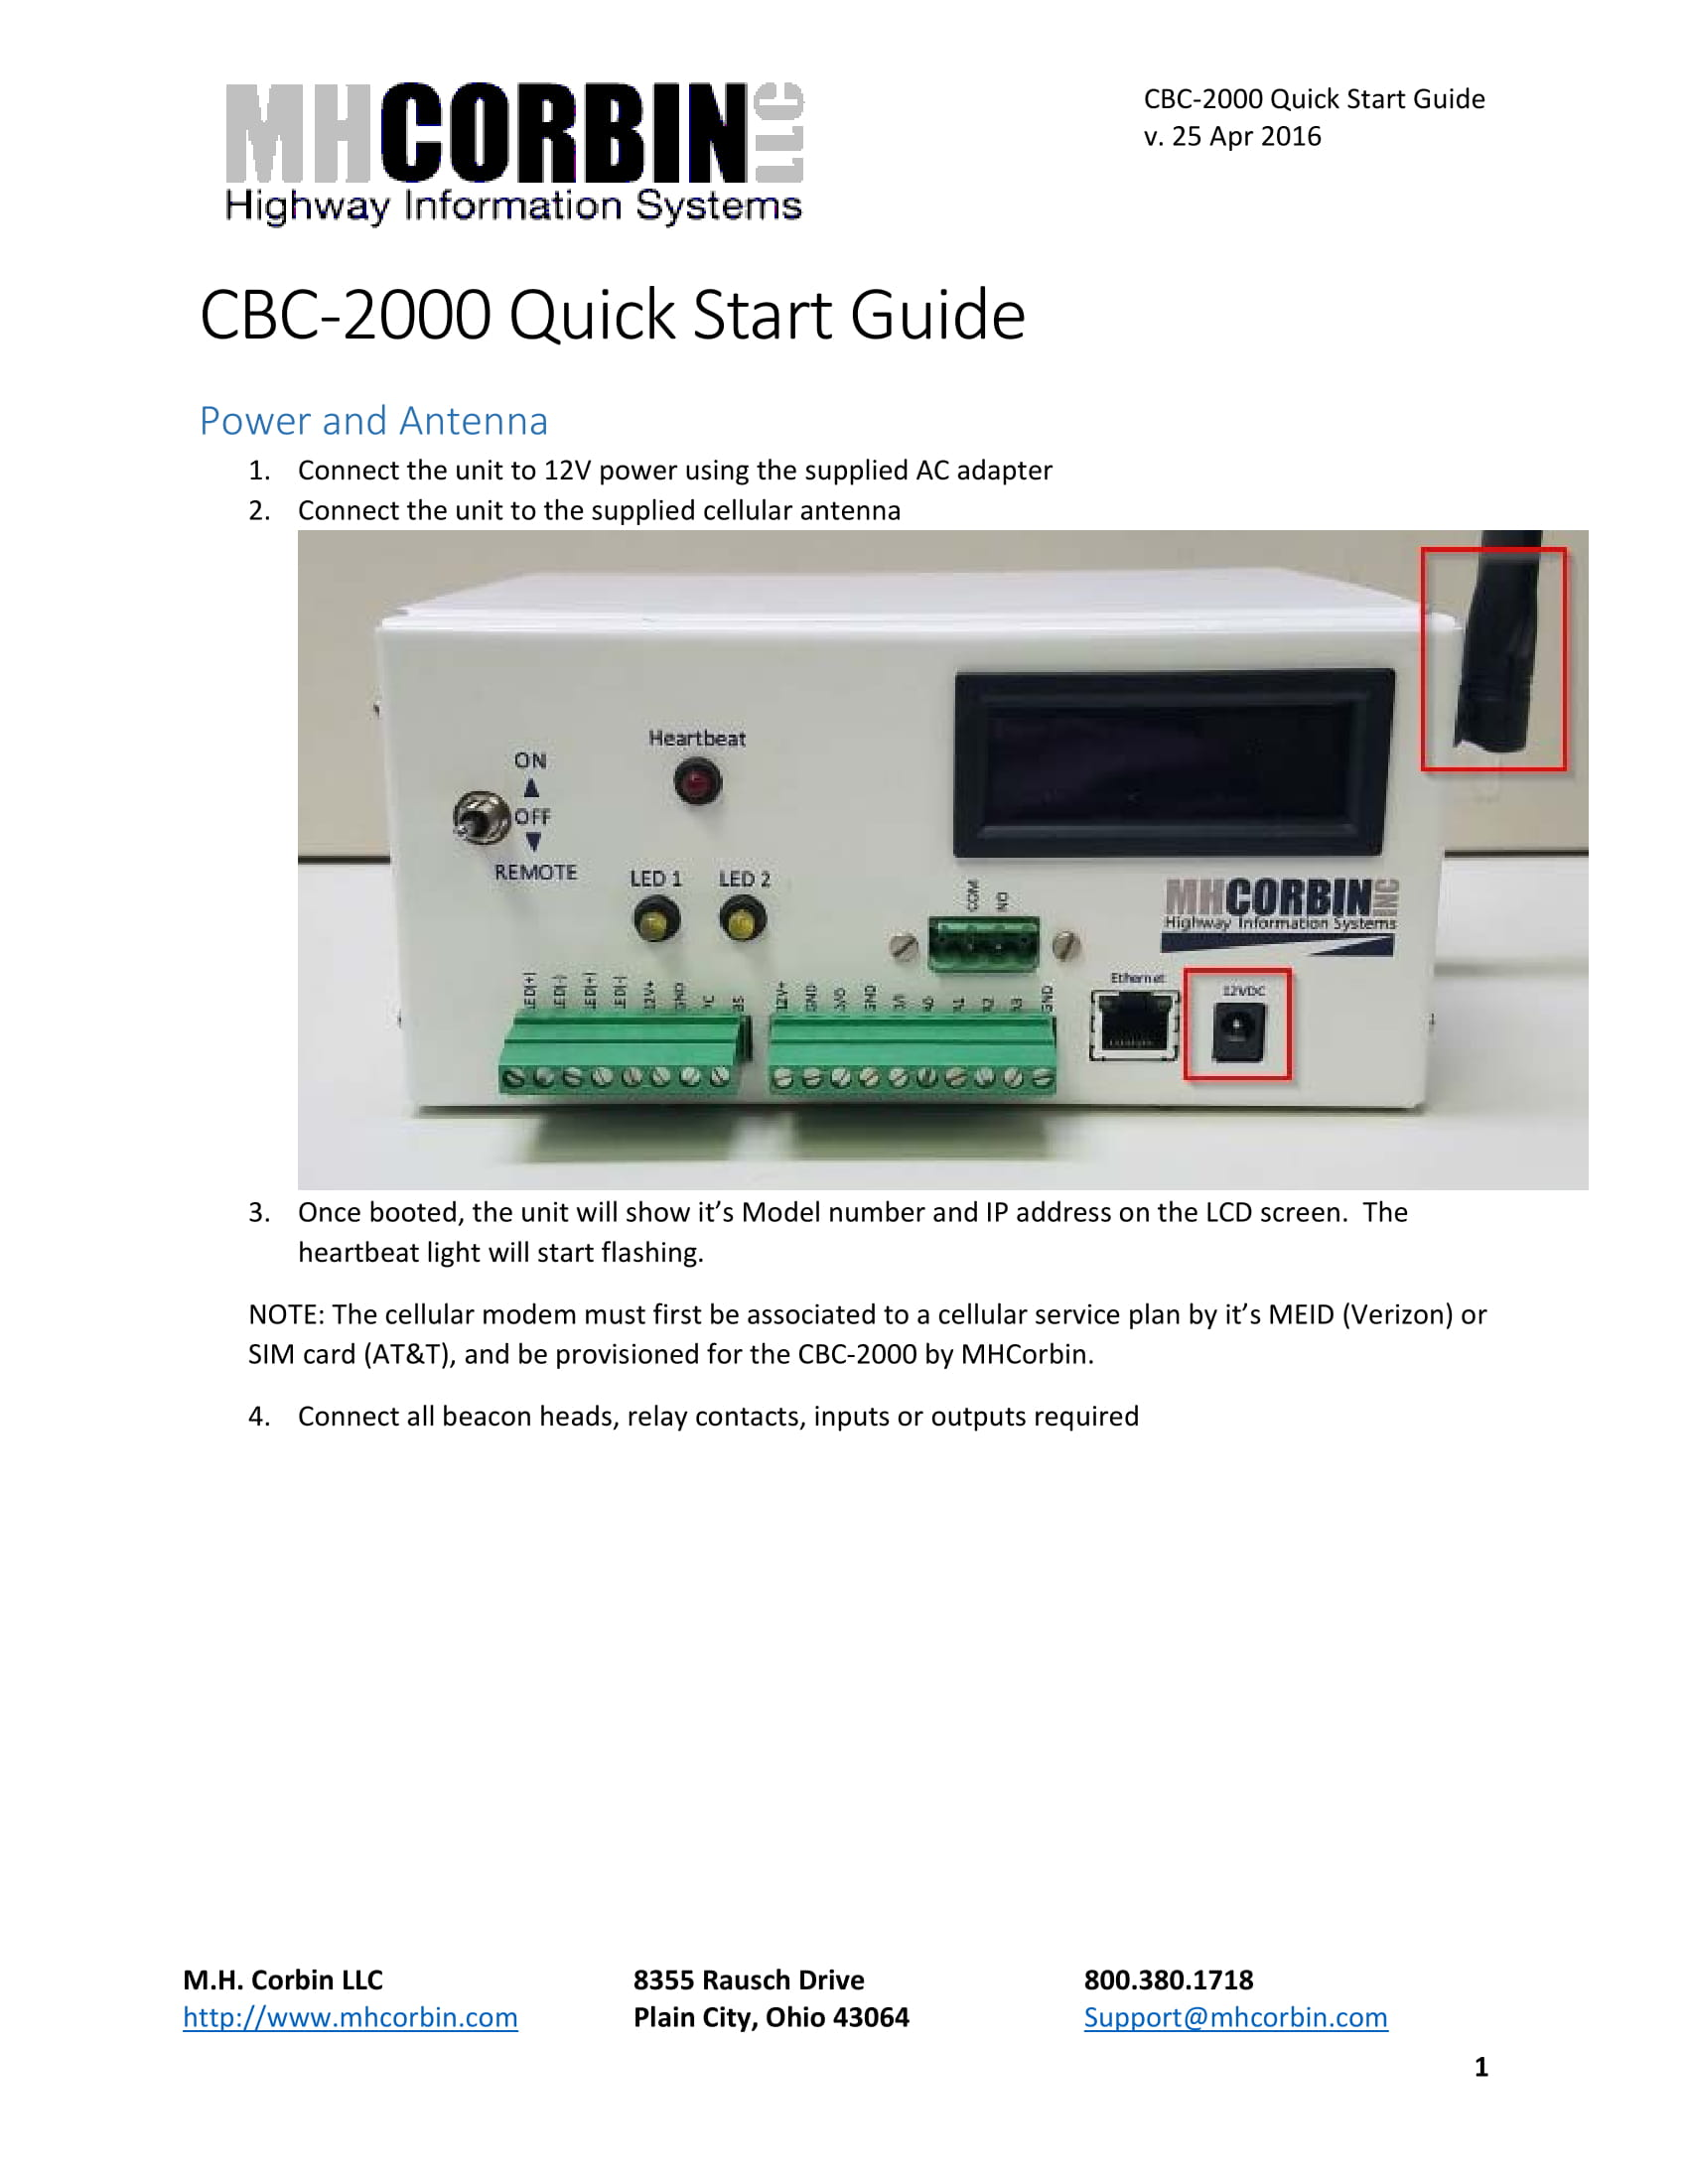 CBC-Quick-Start-Guide-1.jpg